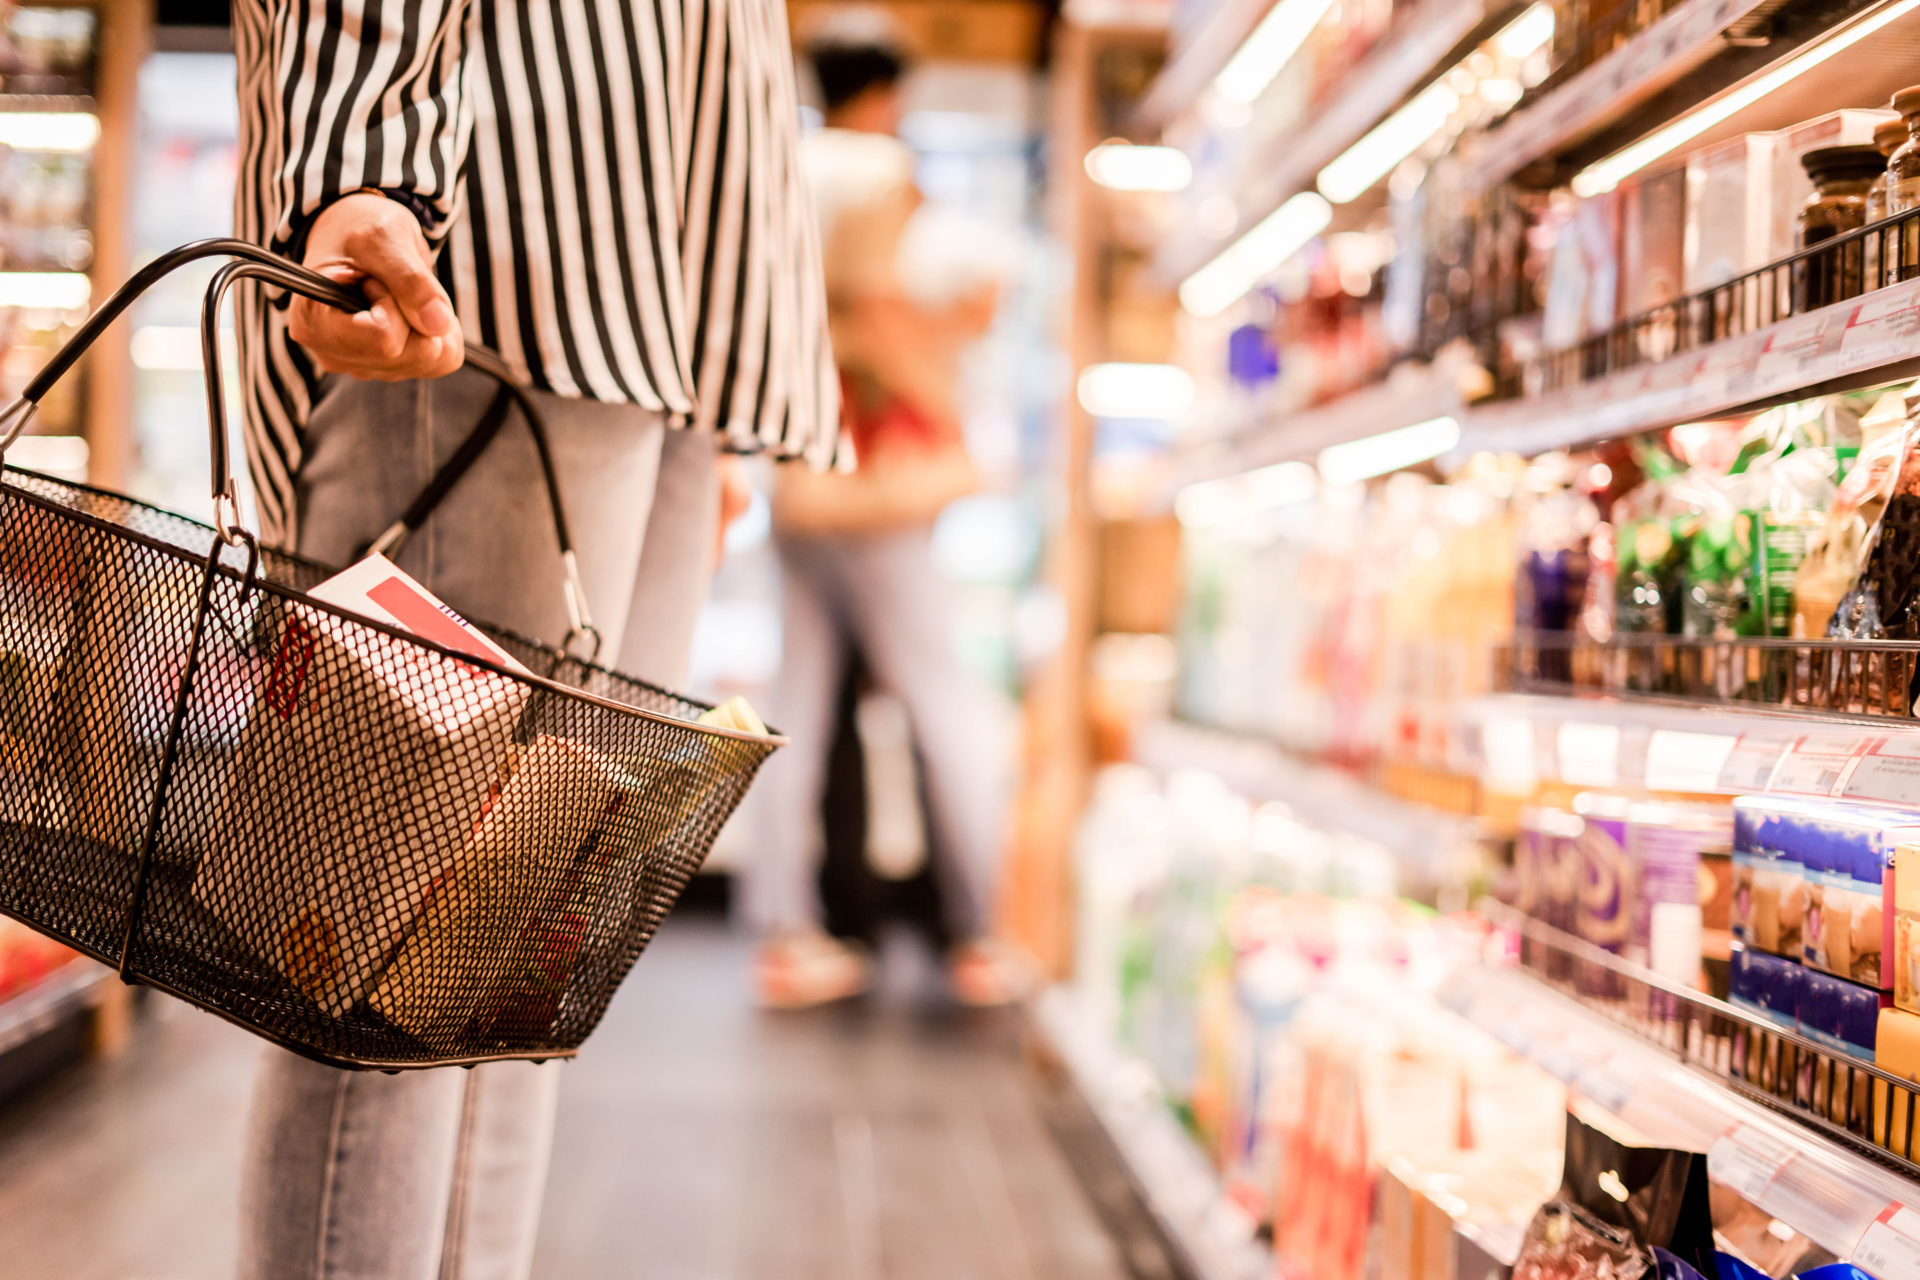 Women,Choosing,Products,In,Supermarkets,,Ready-to-eat,Food,,Shopping